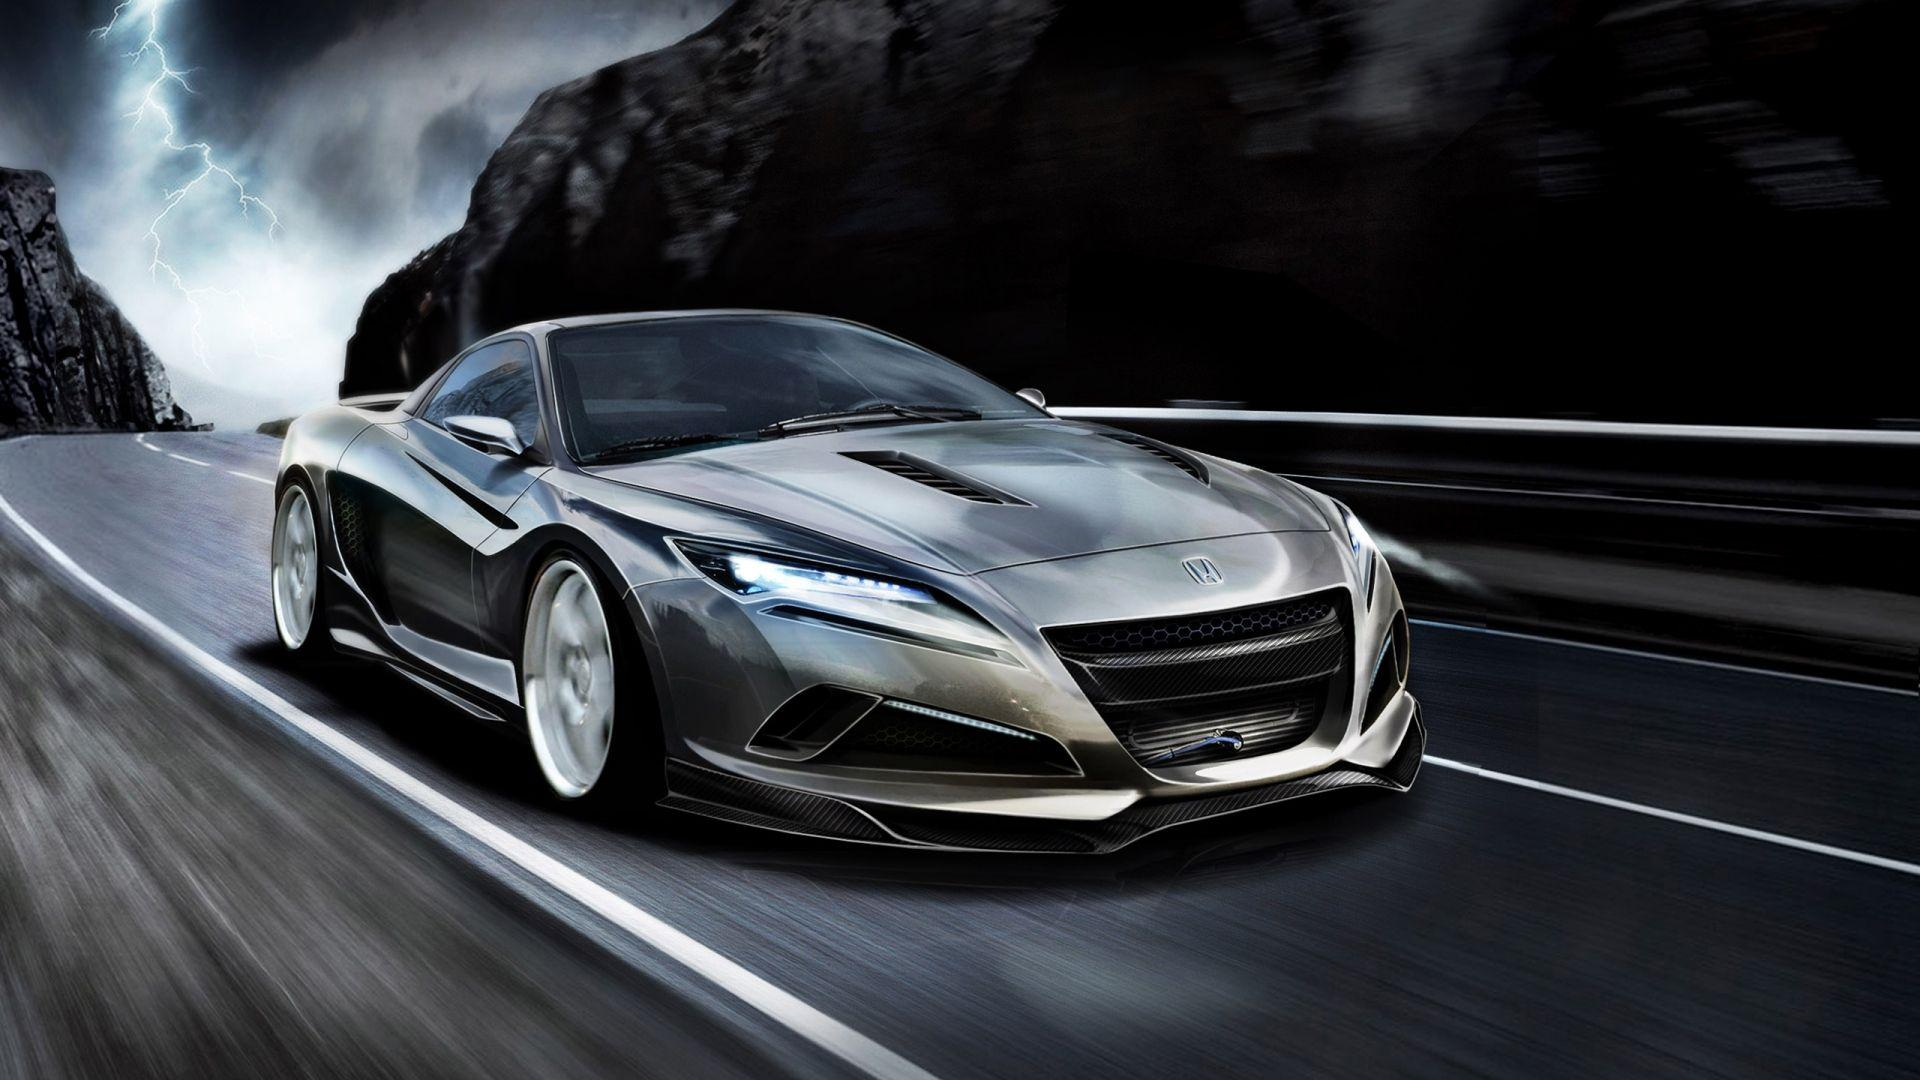 Expensive Cars Wallpapers Wallpaper Cave